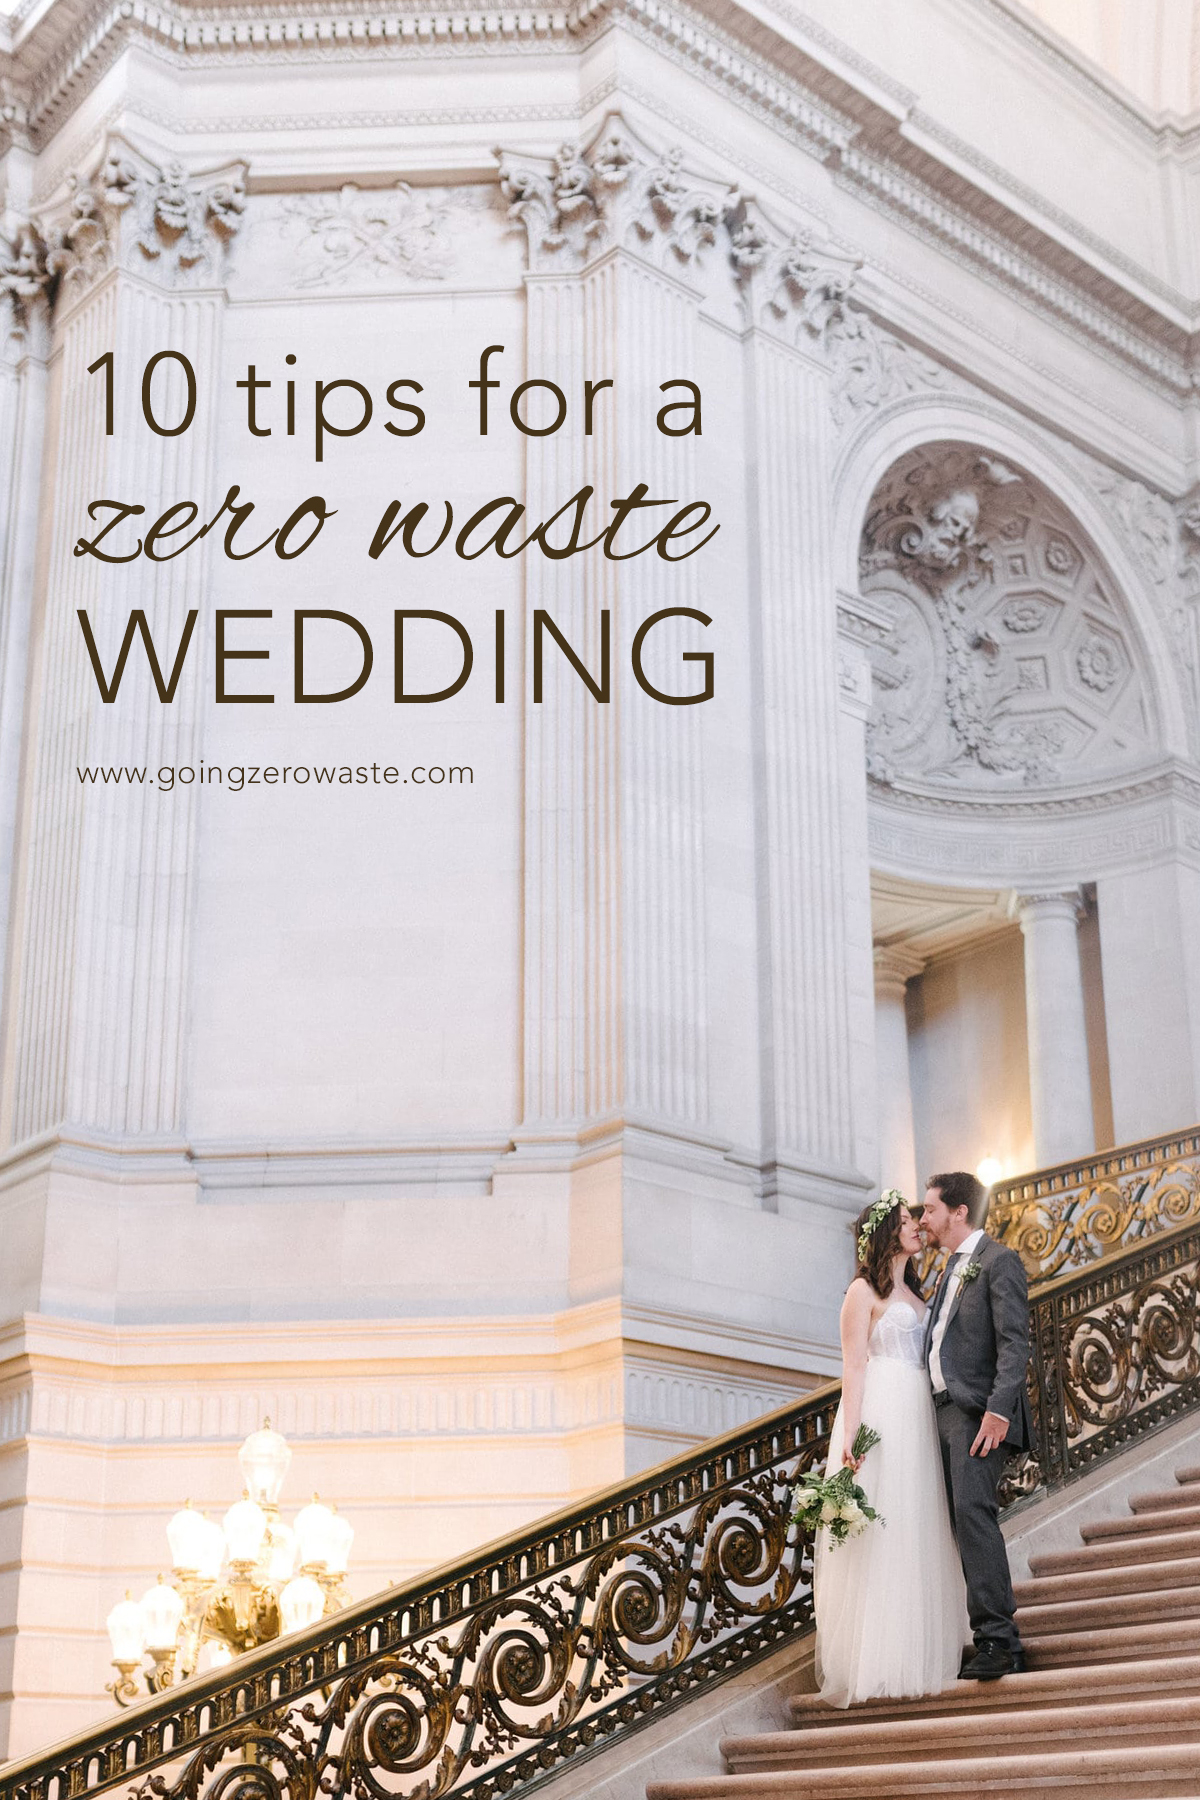 A zero waste wedding ceremony and reception brunch in San Francisco, CA from www.goingzerowaste.com #zerowastewedding #cityhallwedding #sfcityhall #elopements #zerowaste #ecofriendly #wedding